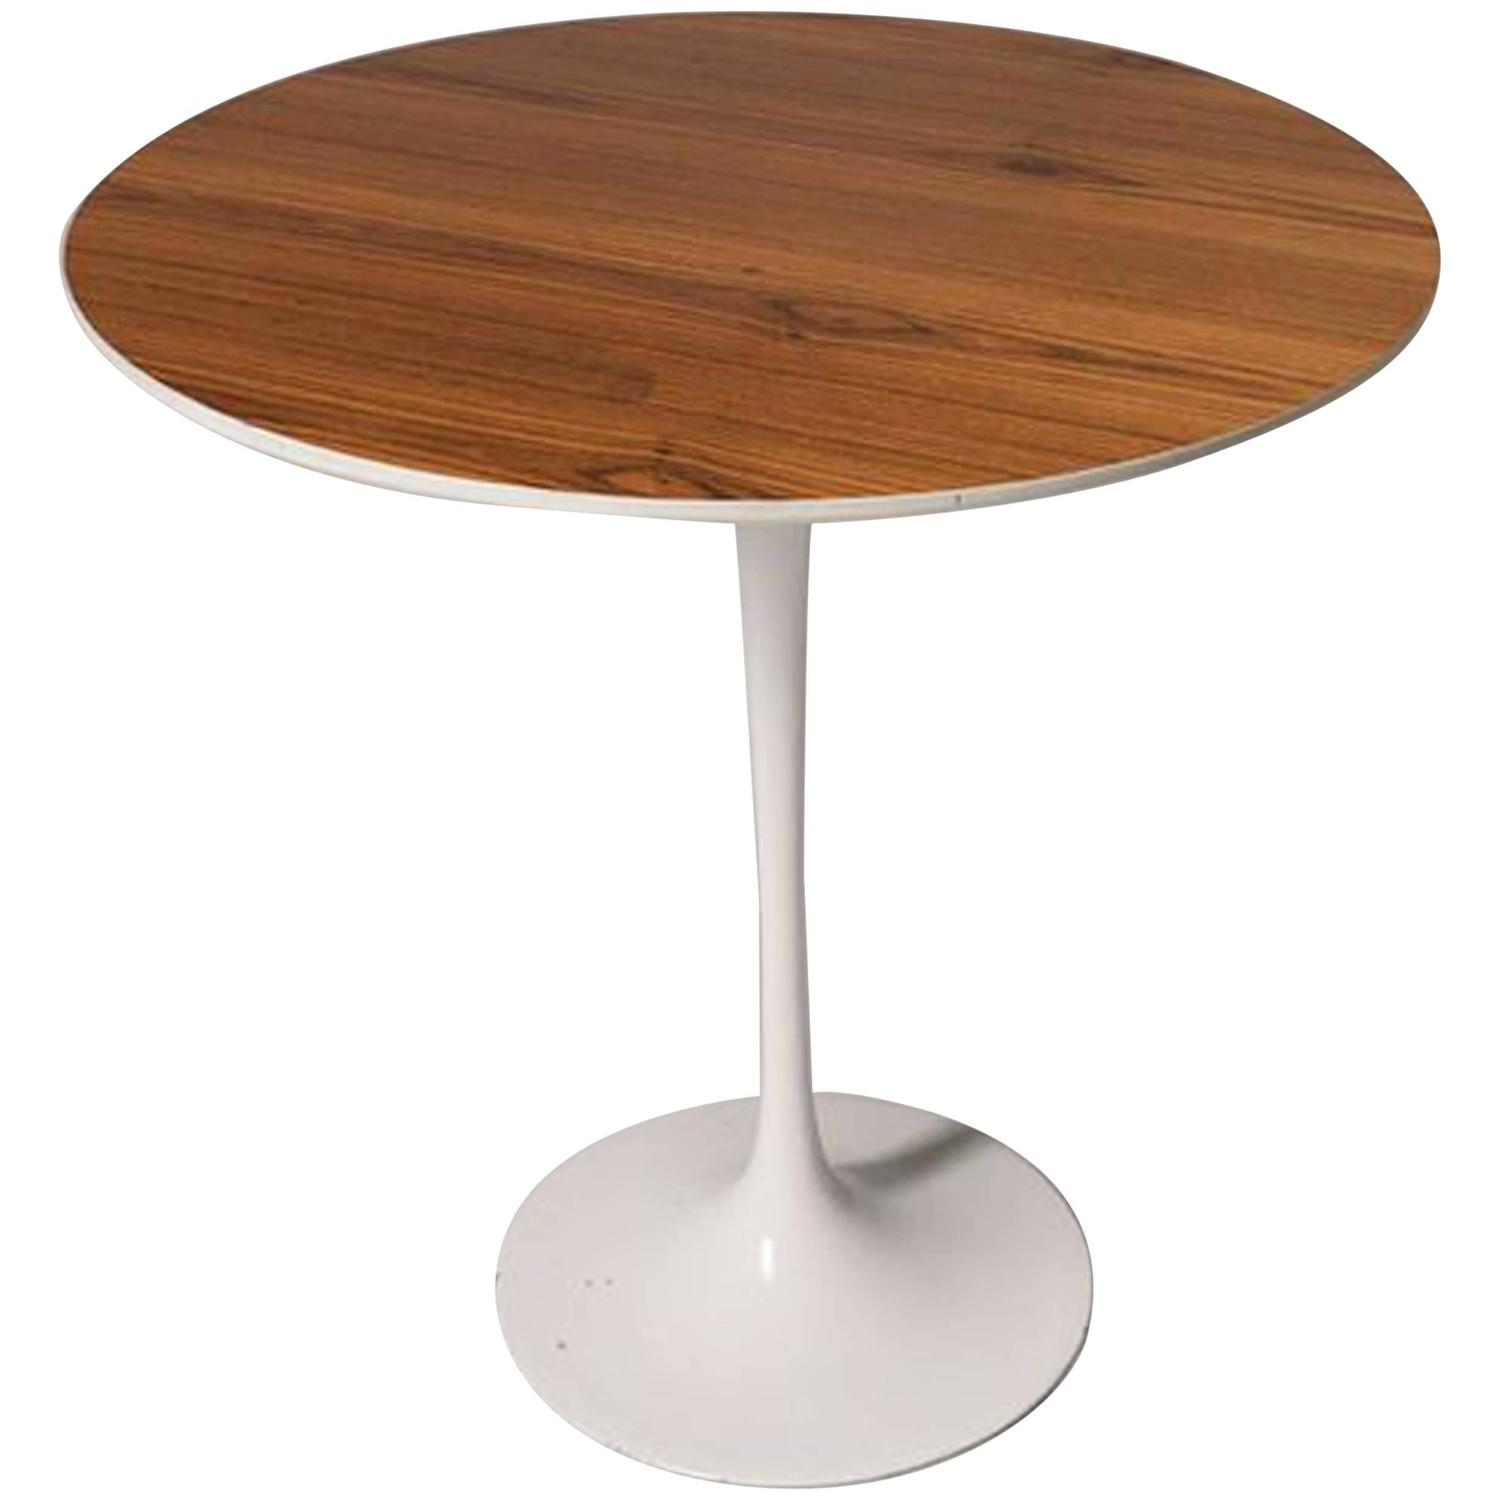 Mid-Century Modern Tulip Side Table By Eero Saarinen At